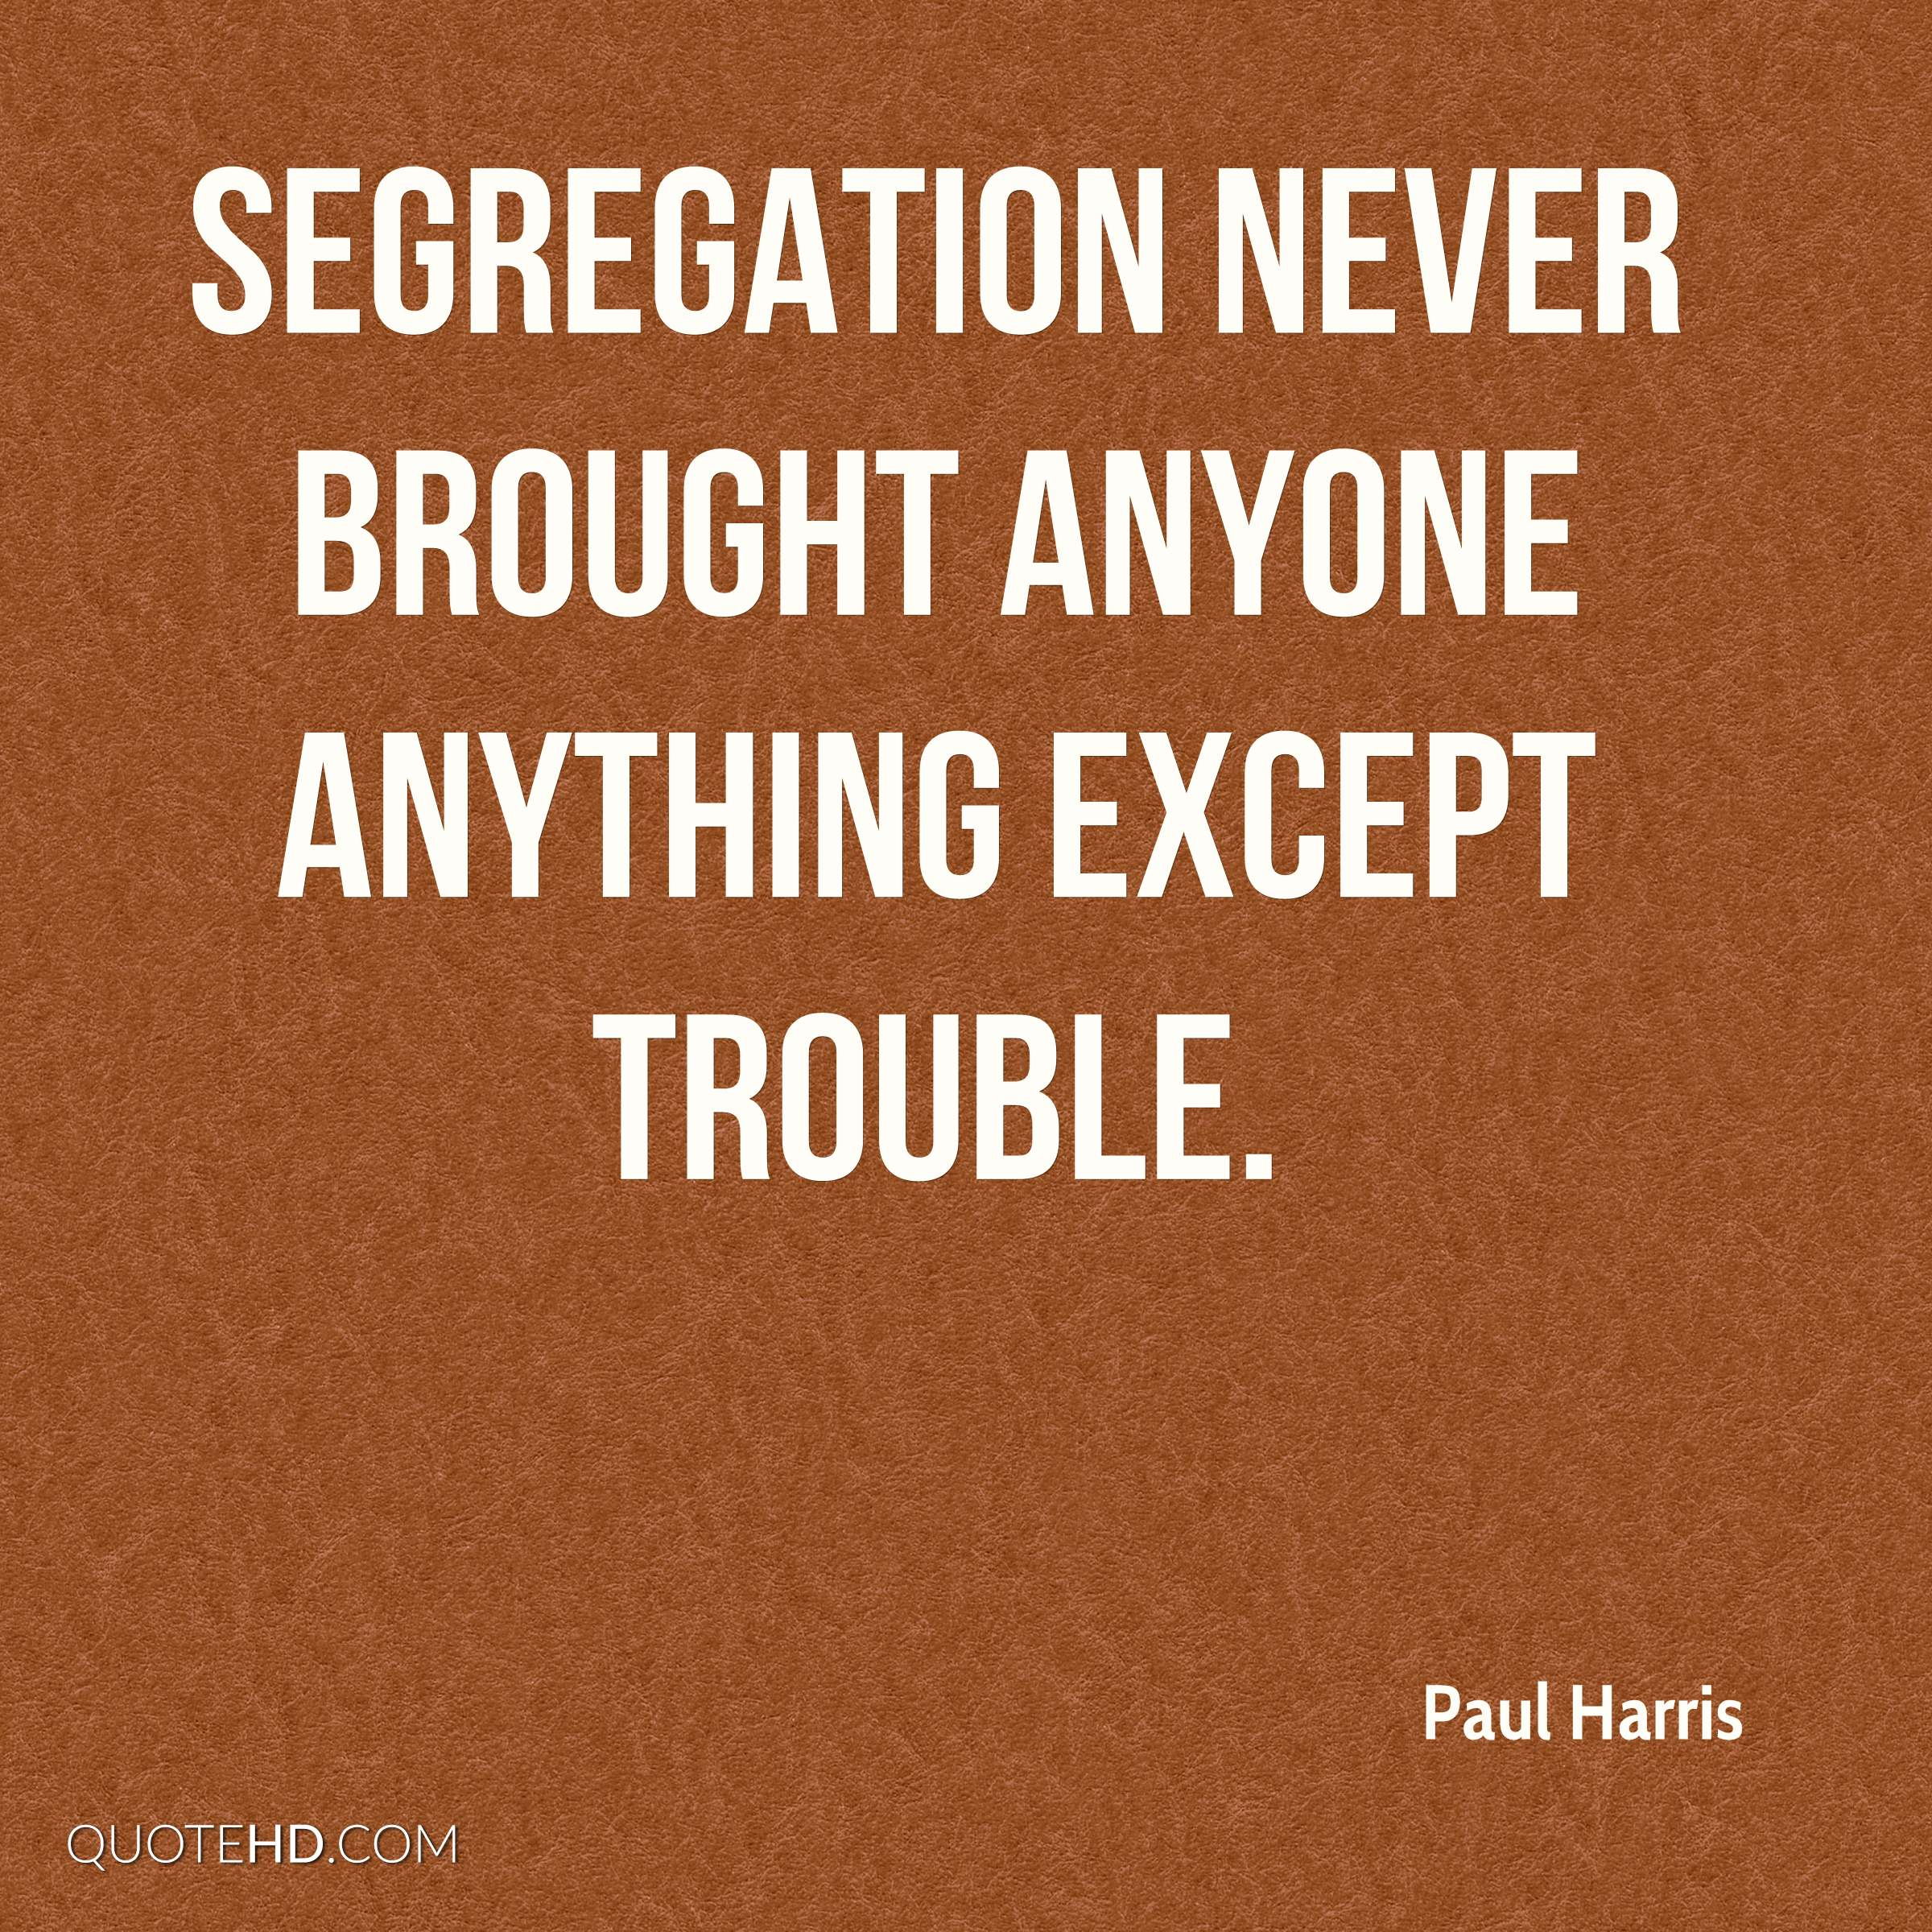 Famous Quotes About Segregation. QuotesGram